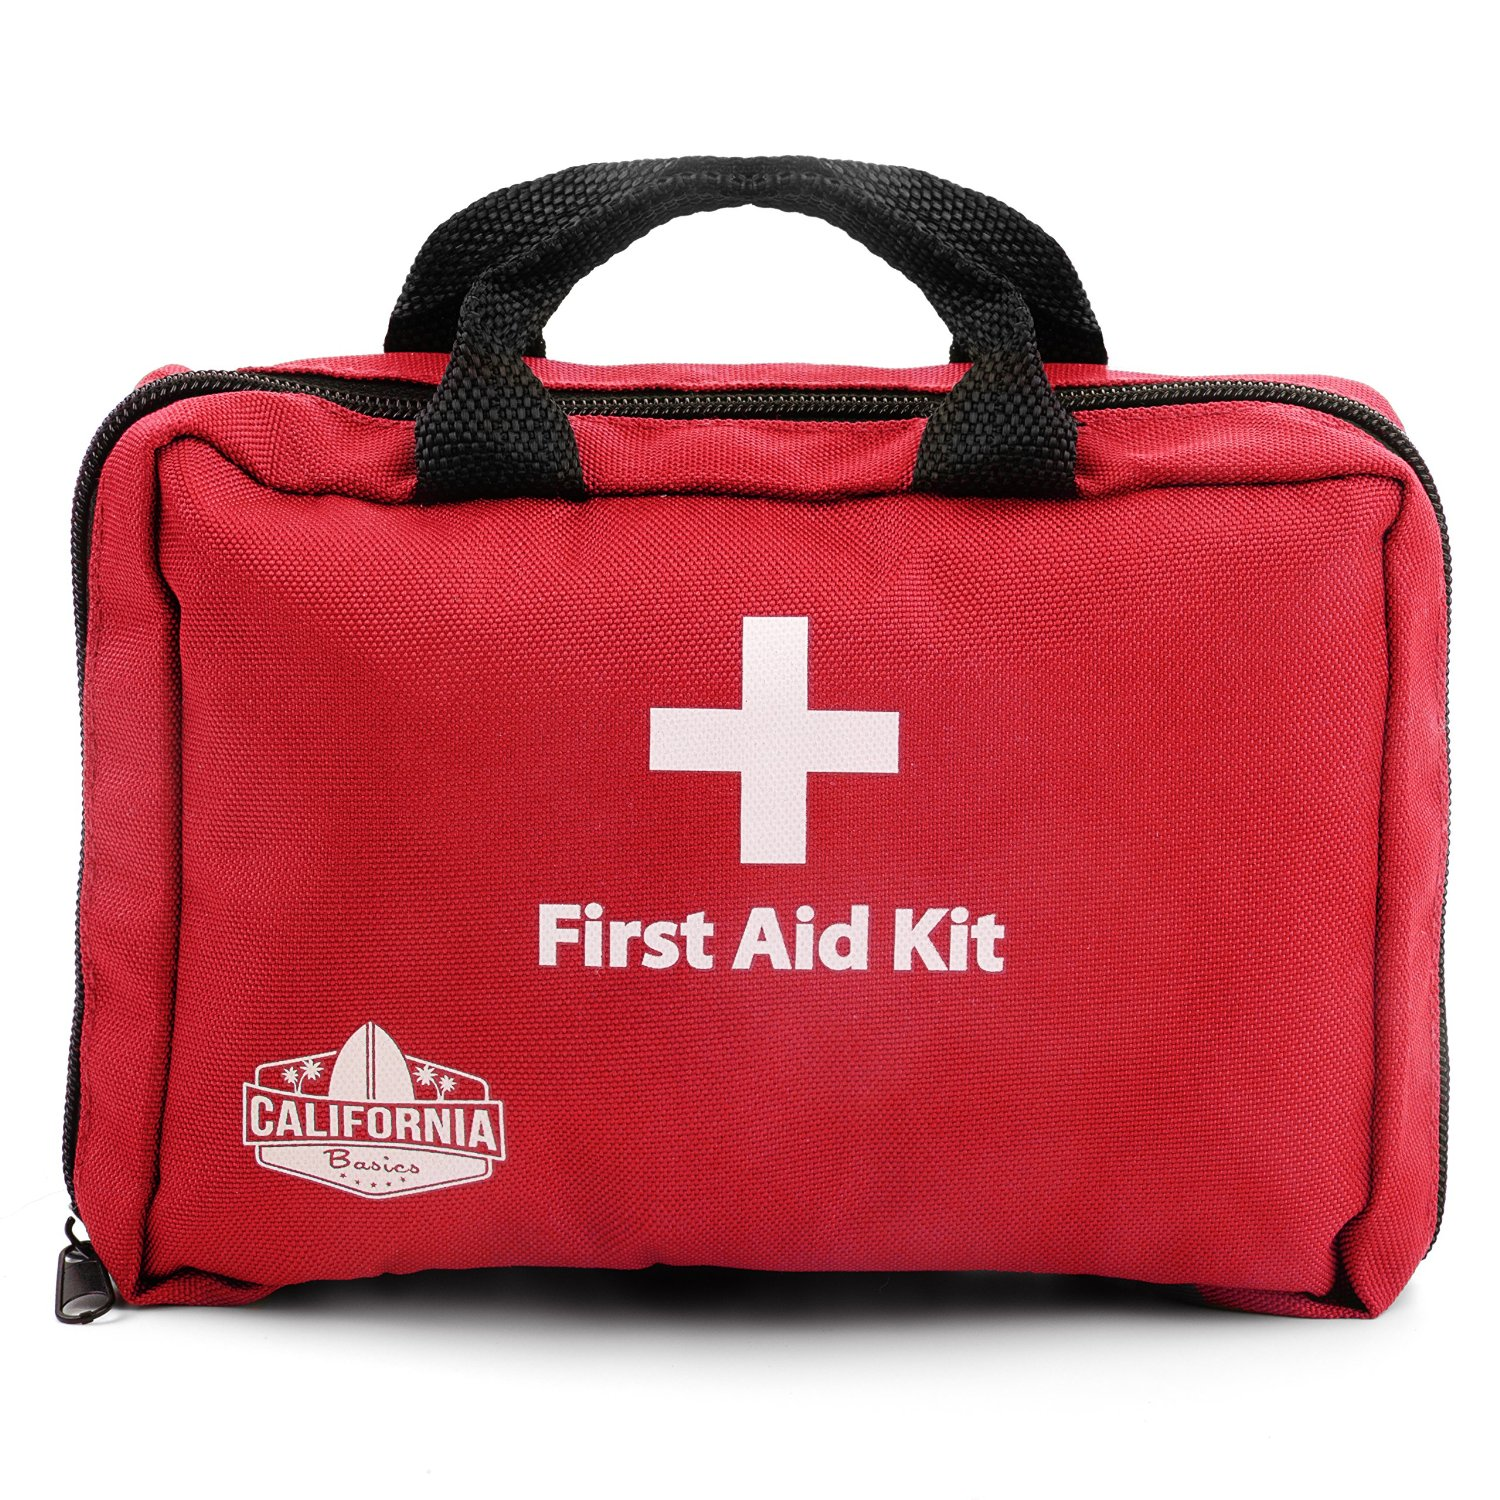 California Basics 115 Piece Portable Travel First Aid Essentials Kit with Carrying Case, Includes Eye Wash, Cold Pack, Emergency Blanket for... by California Basics